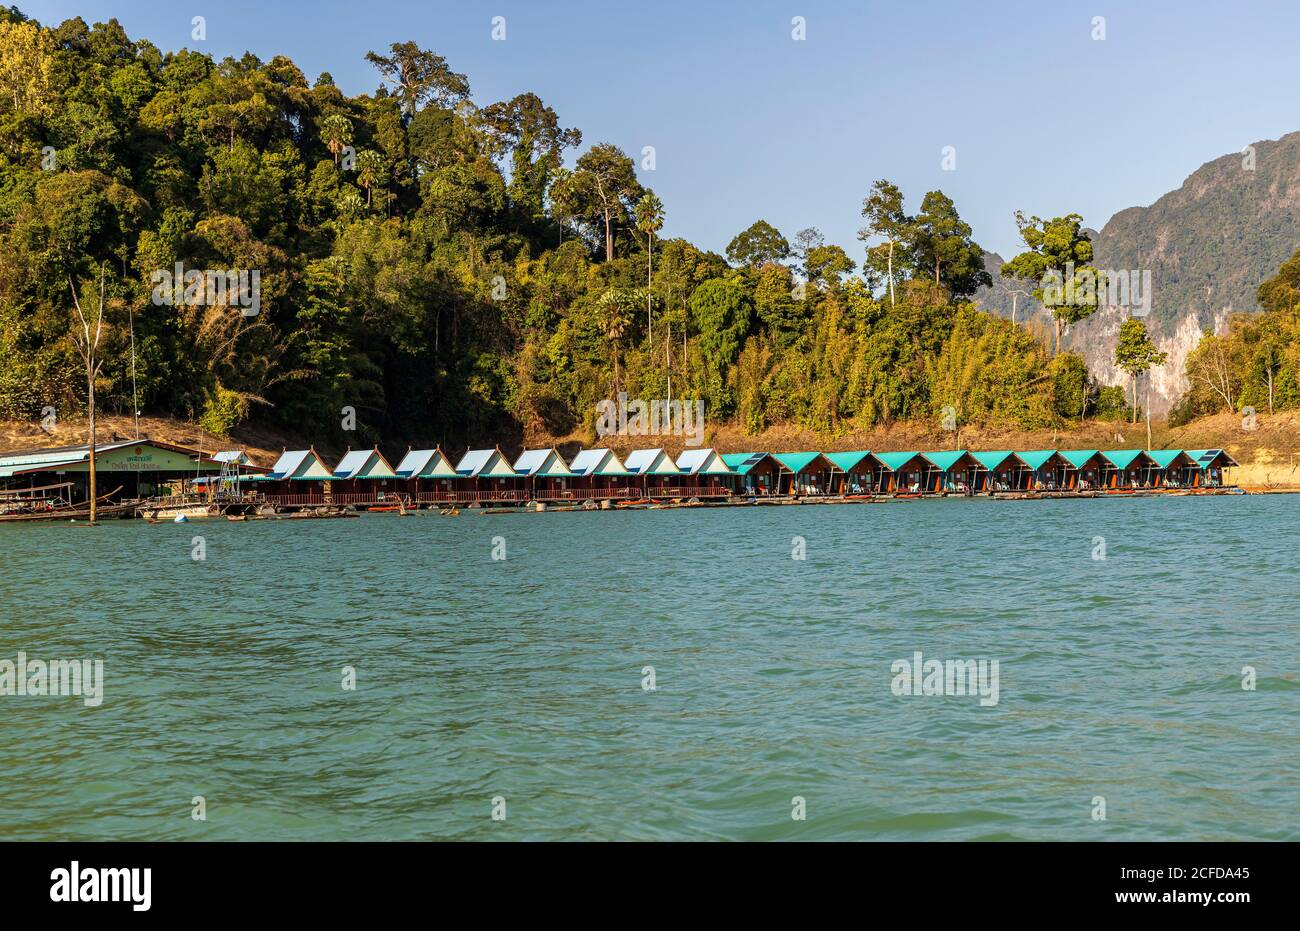 View over footbridge with bungalows (Khao Sok Smiley Lake House) on the water of Ratchaprapha Lake in Khao Sok National Park, Khao Sok, Thailand Stock Photo